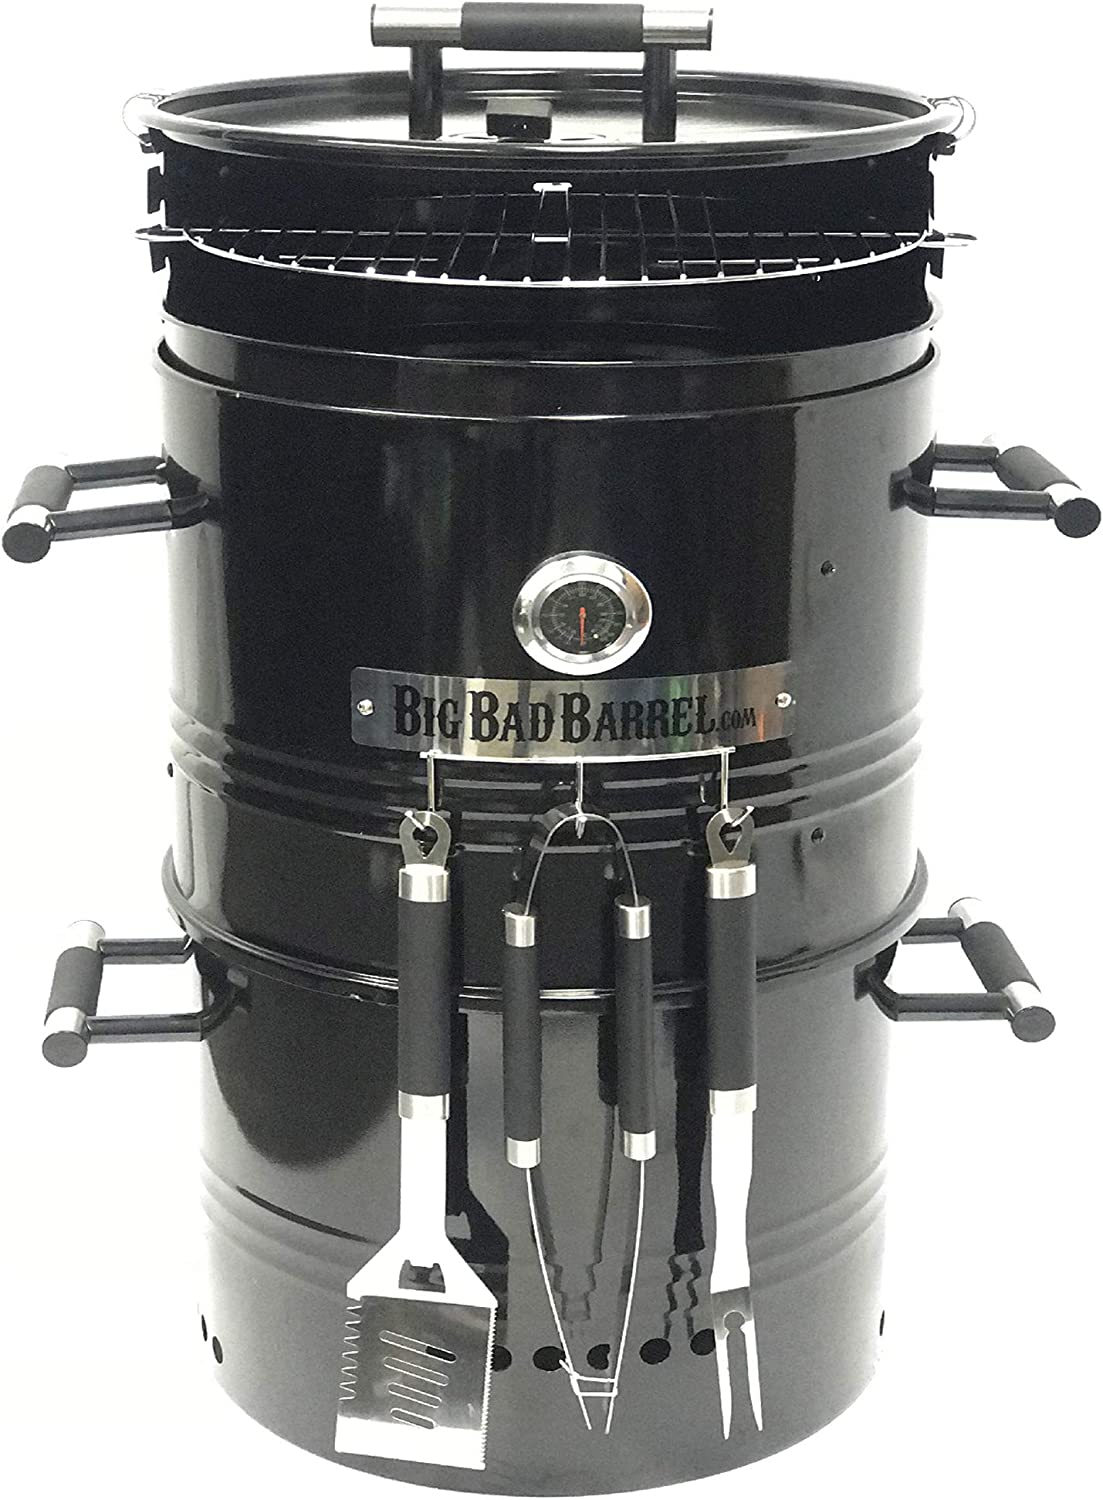 EasyGoProducts Big Bad Barrel Pit Charcoal Barbeque 5 in 1 review